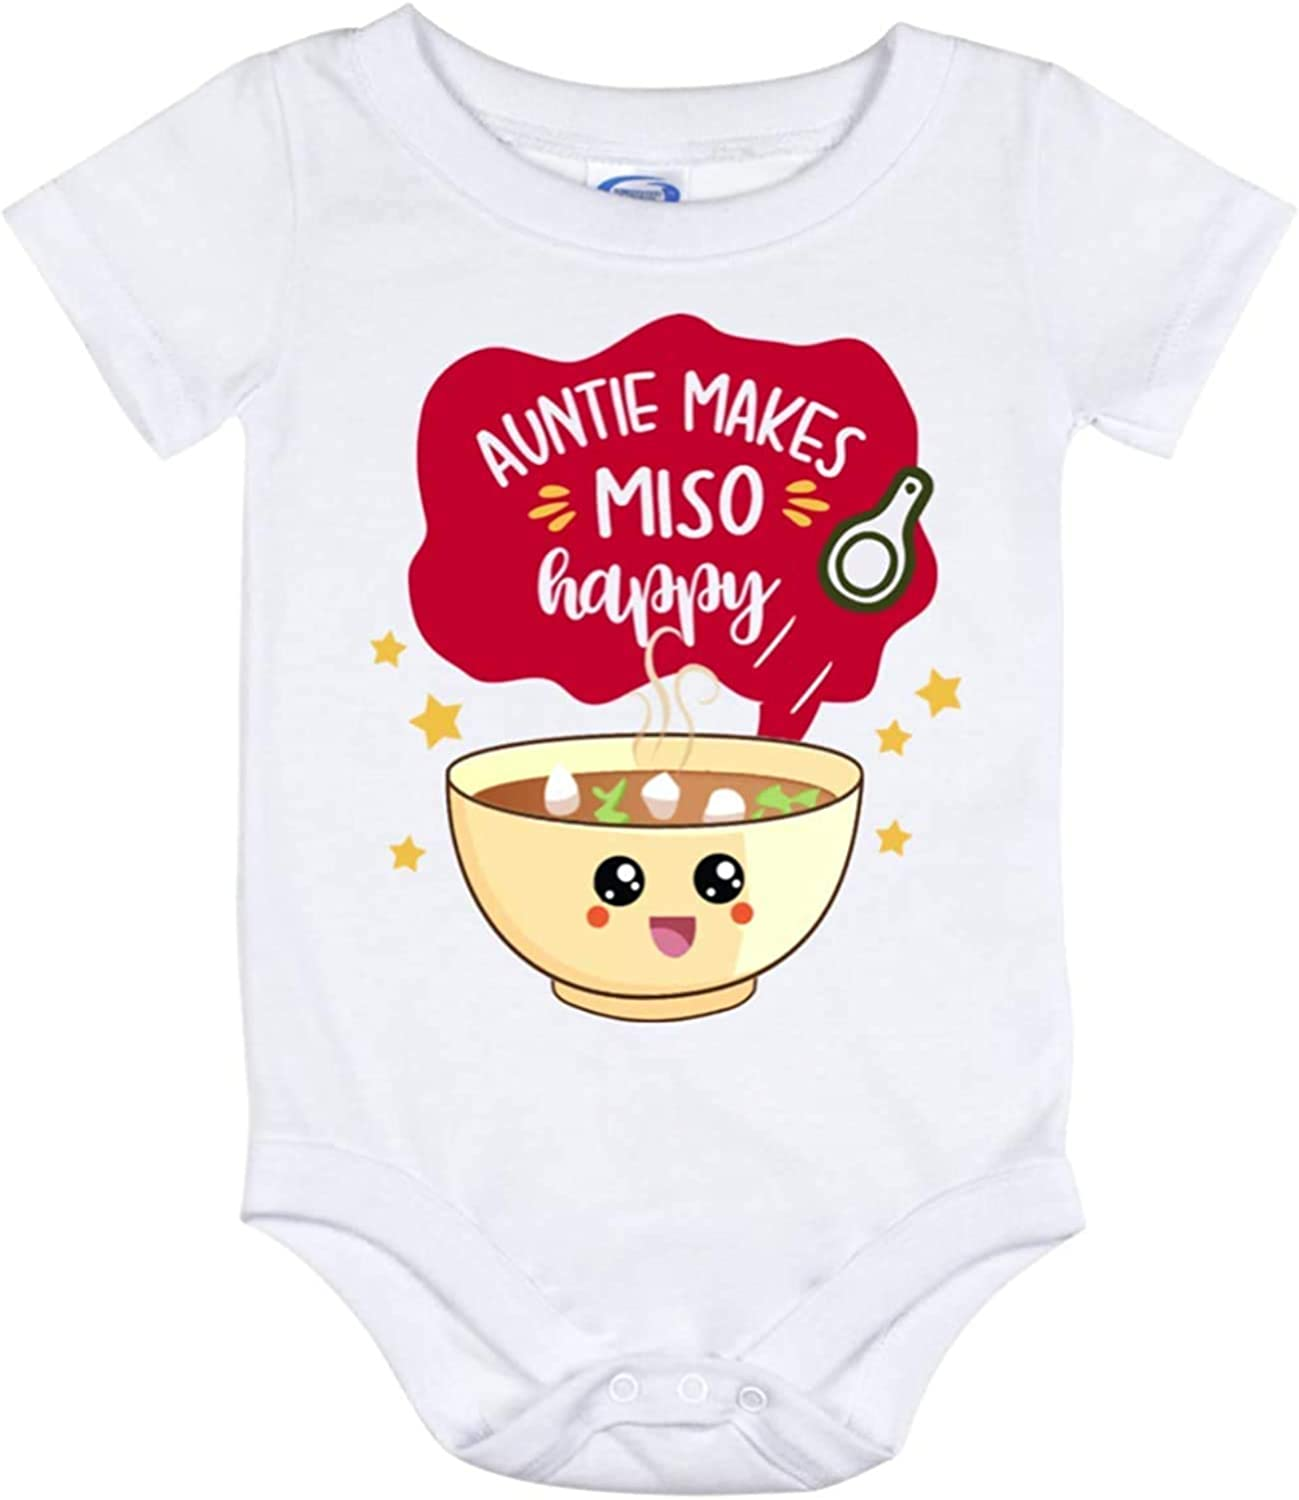 BYRON HOYLE Baby Romper Auntie Makes Miso Happy Noodle Food Pun Baby Bodysuit Newborn Outfit